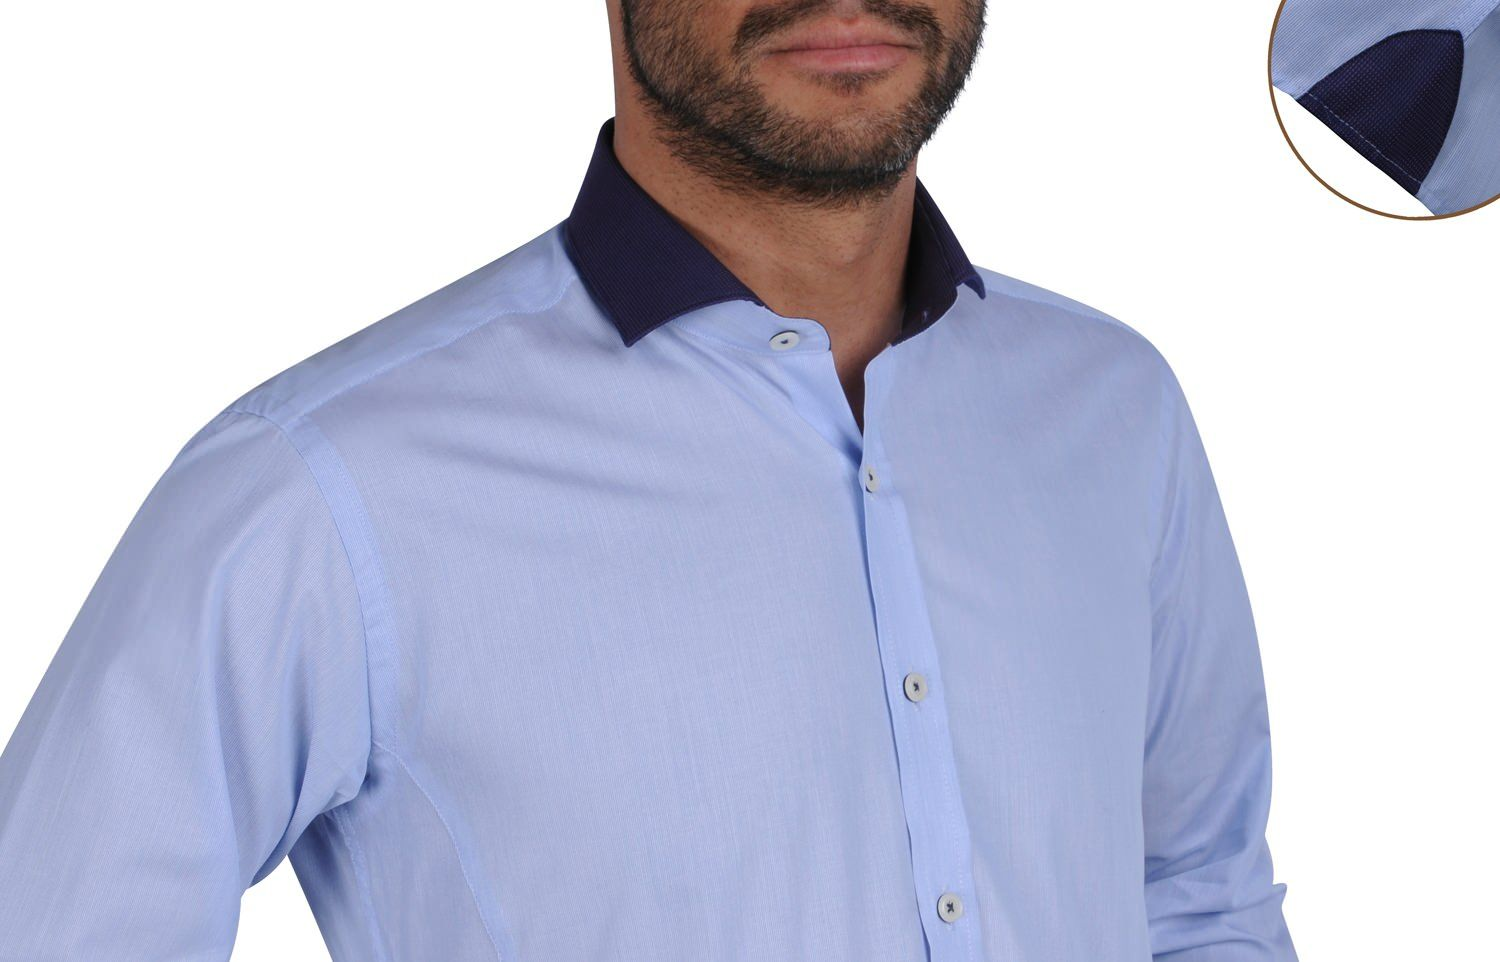 Sky Blue Shirt Navy Soho Collar, Waisted-fit - Dress Shirts for Men - French-Shirts.com